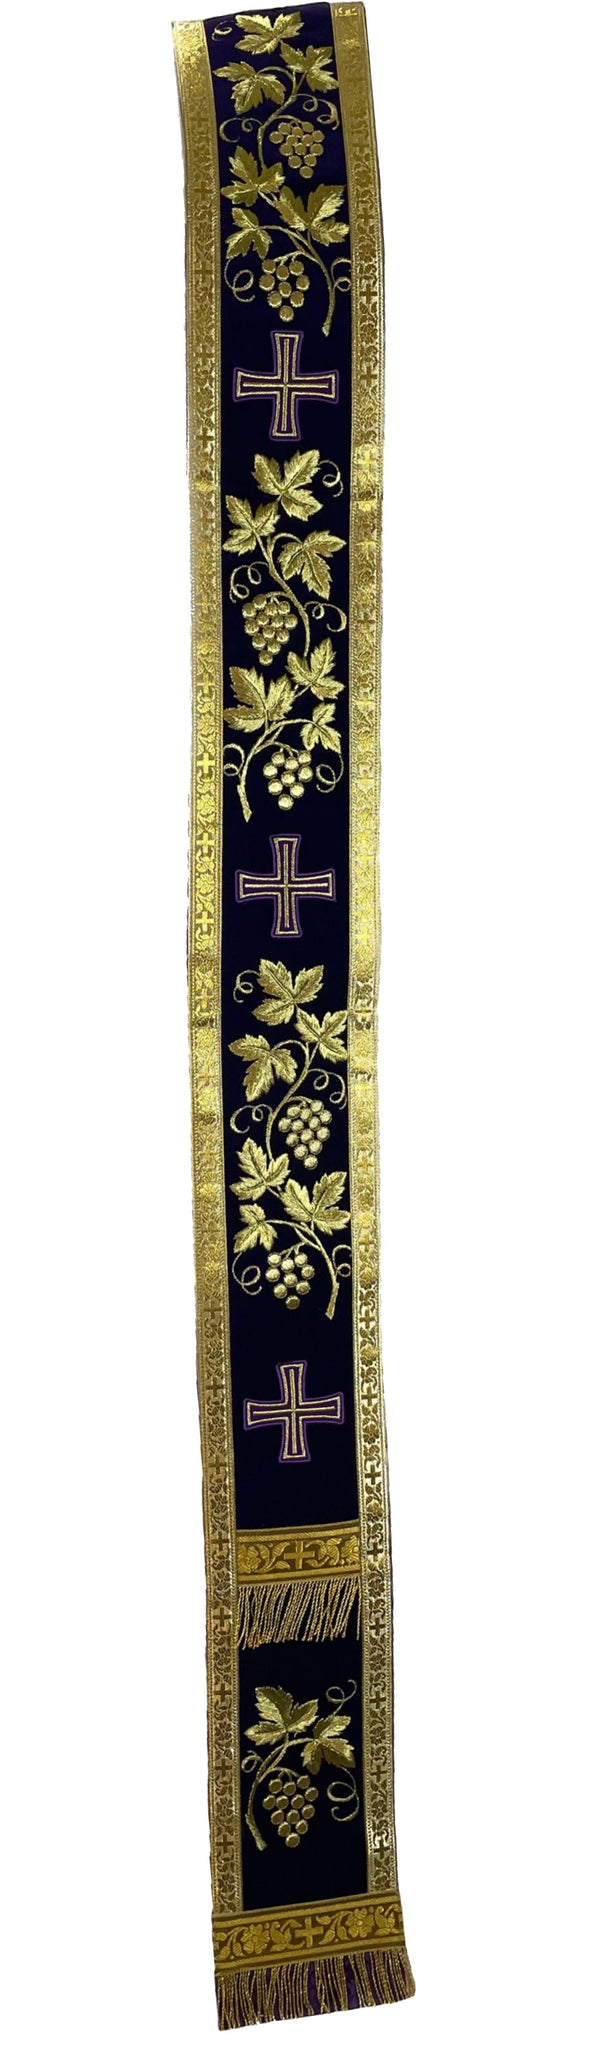 "Purple Orar Orarion Stole Grapevine embroidery 111"" long READY TO SHIP FROM US"